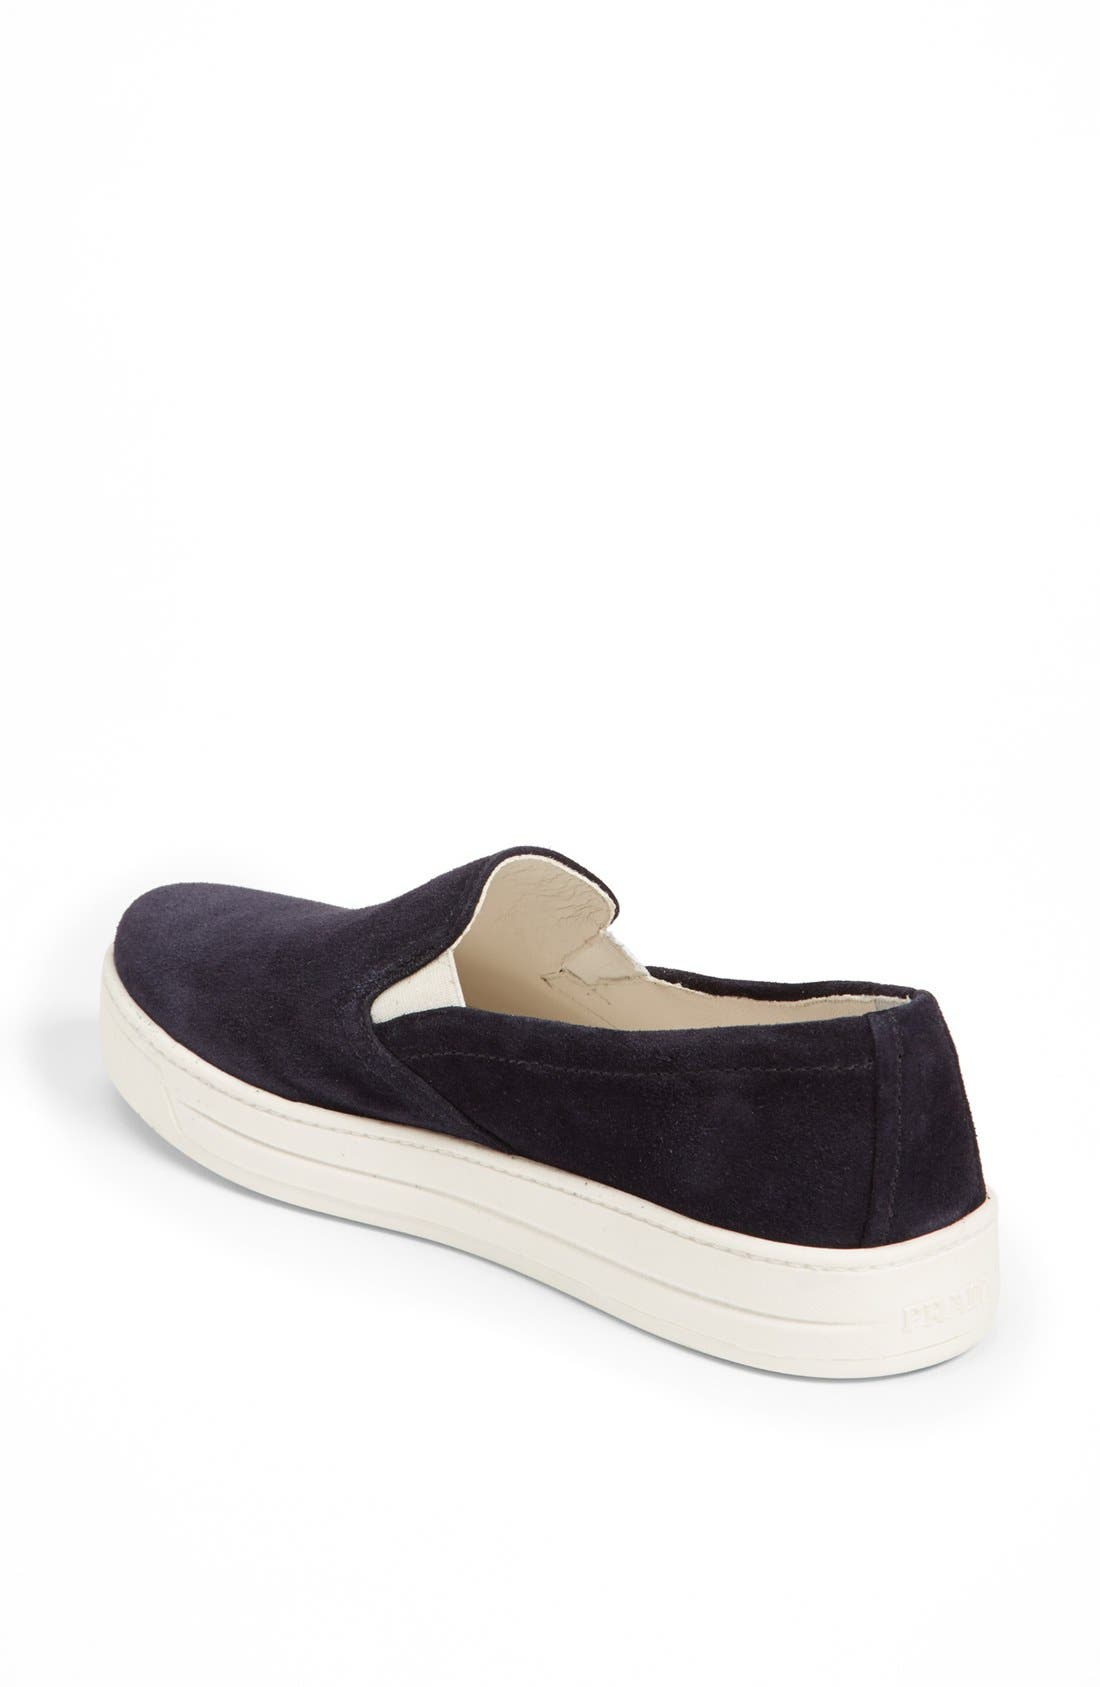 Slip-On Sneaker,                             Alternate thumbnail 78, color,